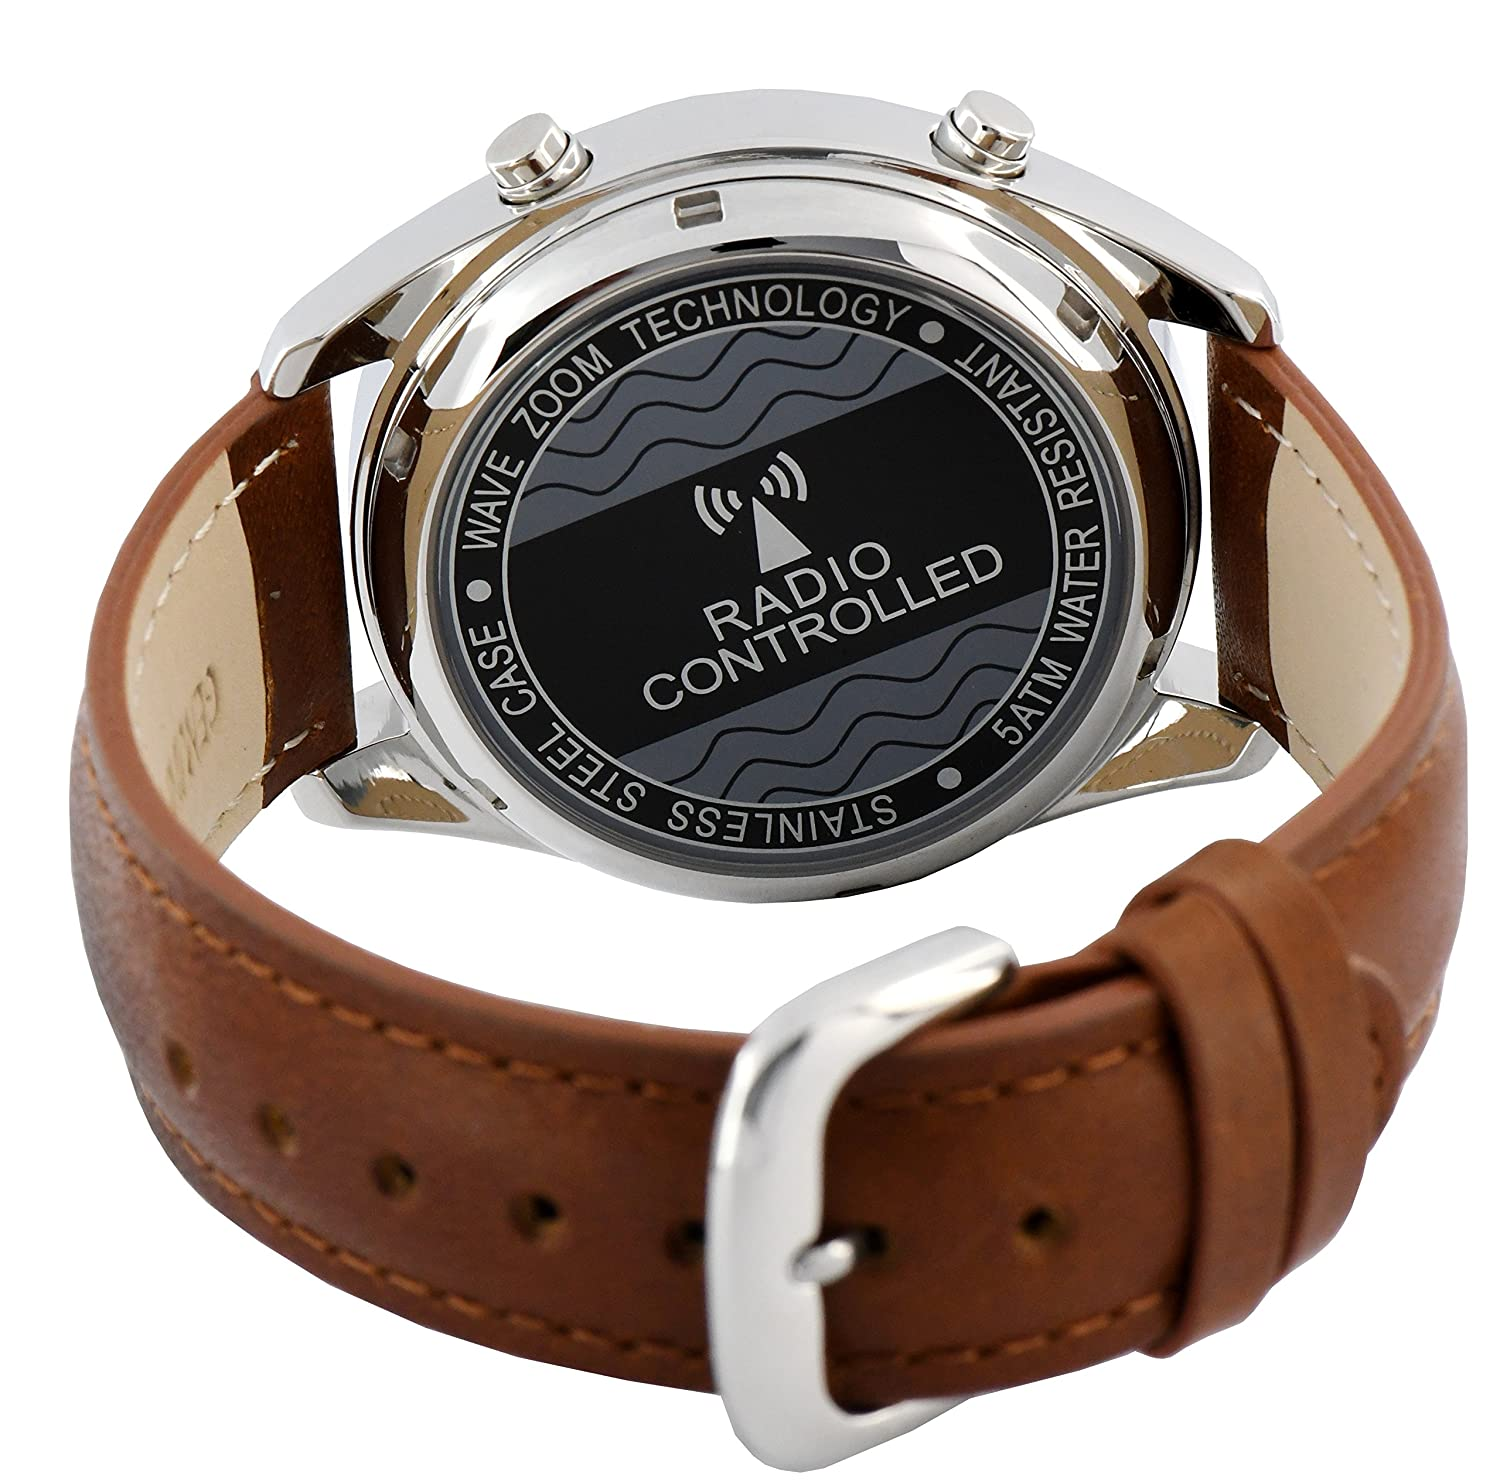 Amazon.com: COOLFIRE Military Solar Power Radio Controlled Watch (TC-1383K): Health & Personal Care